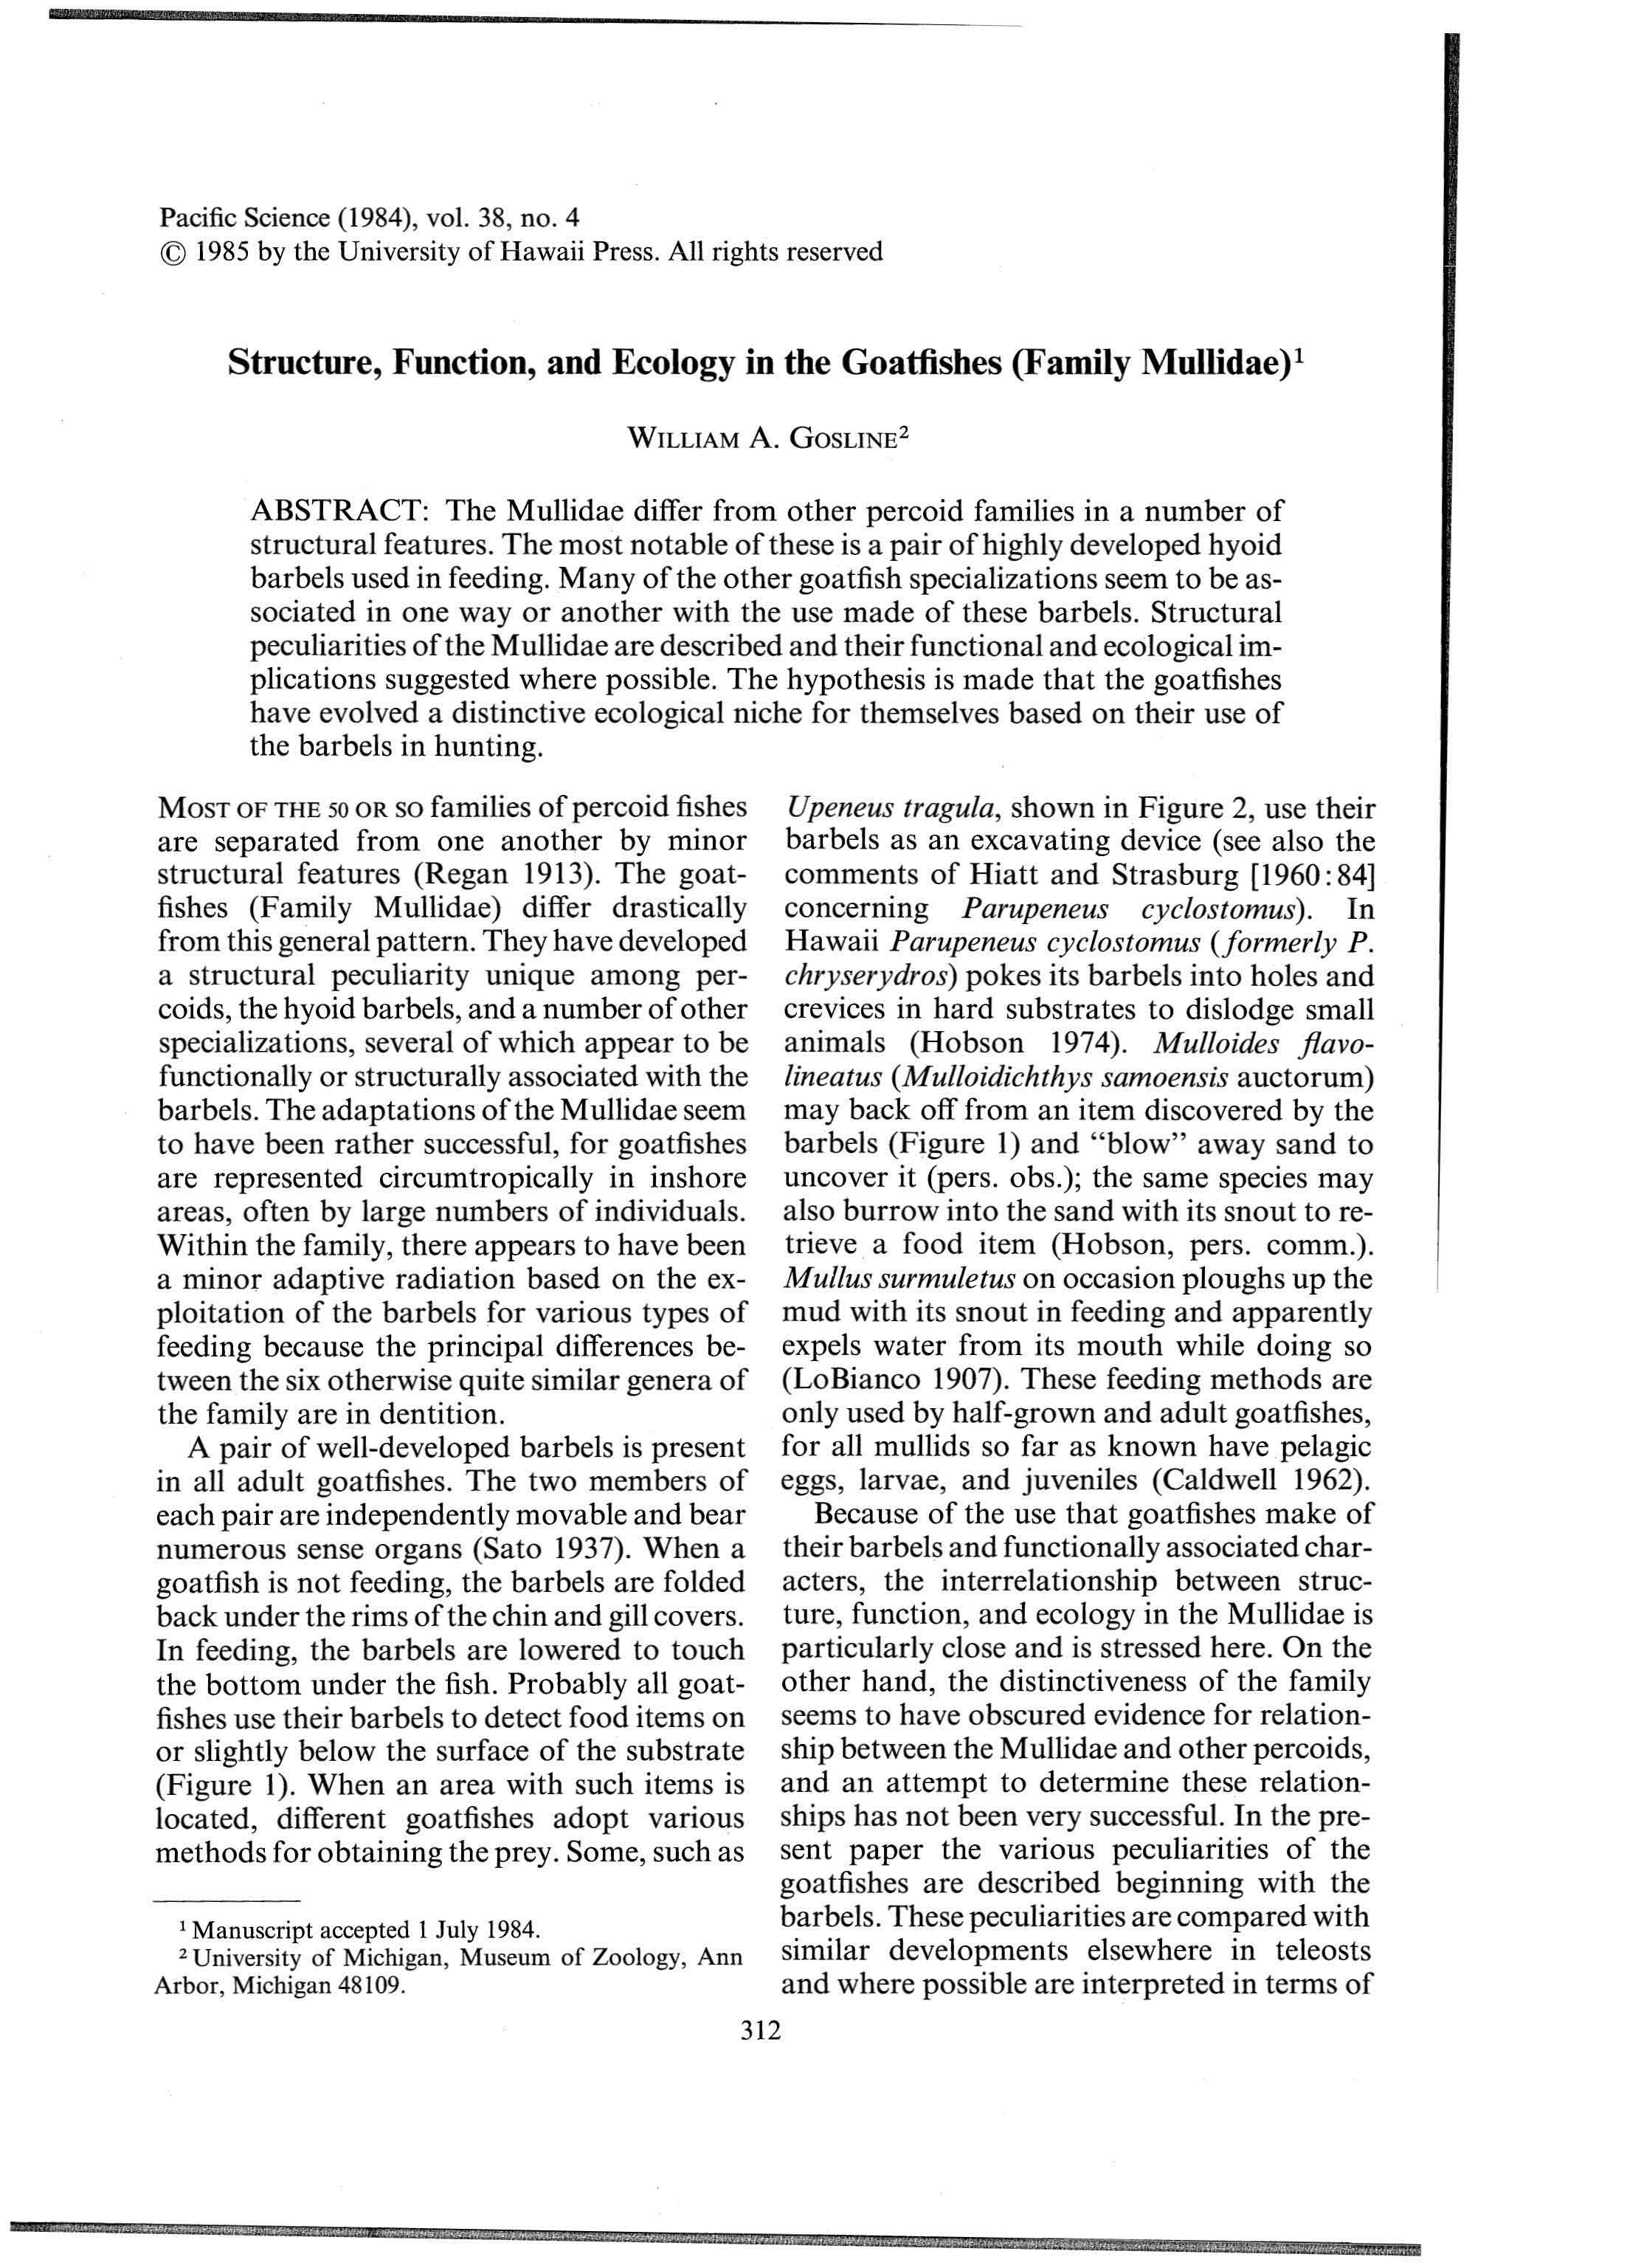 Pacific Science (1984), vol. 38, no. 4 1985 by the University of Hawaii Press. All rights reserved Structure, Function, and Ecology in the Goatfishes (Family Mullidae)! WILLIAM A.